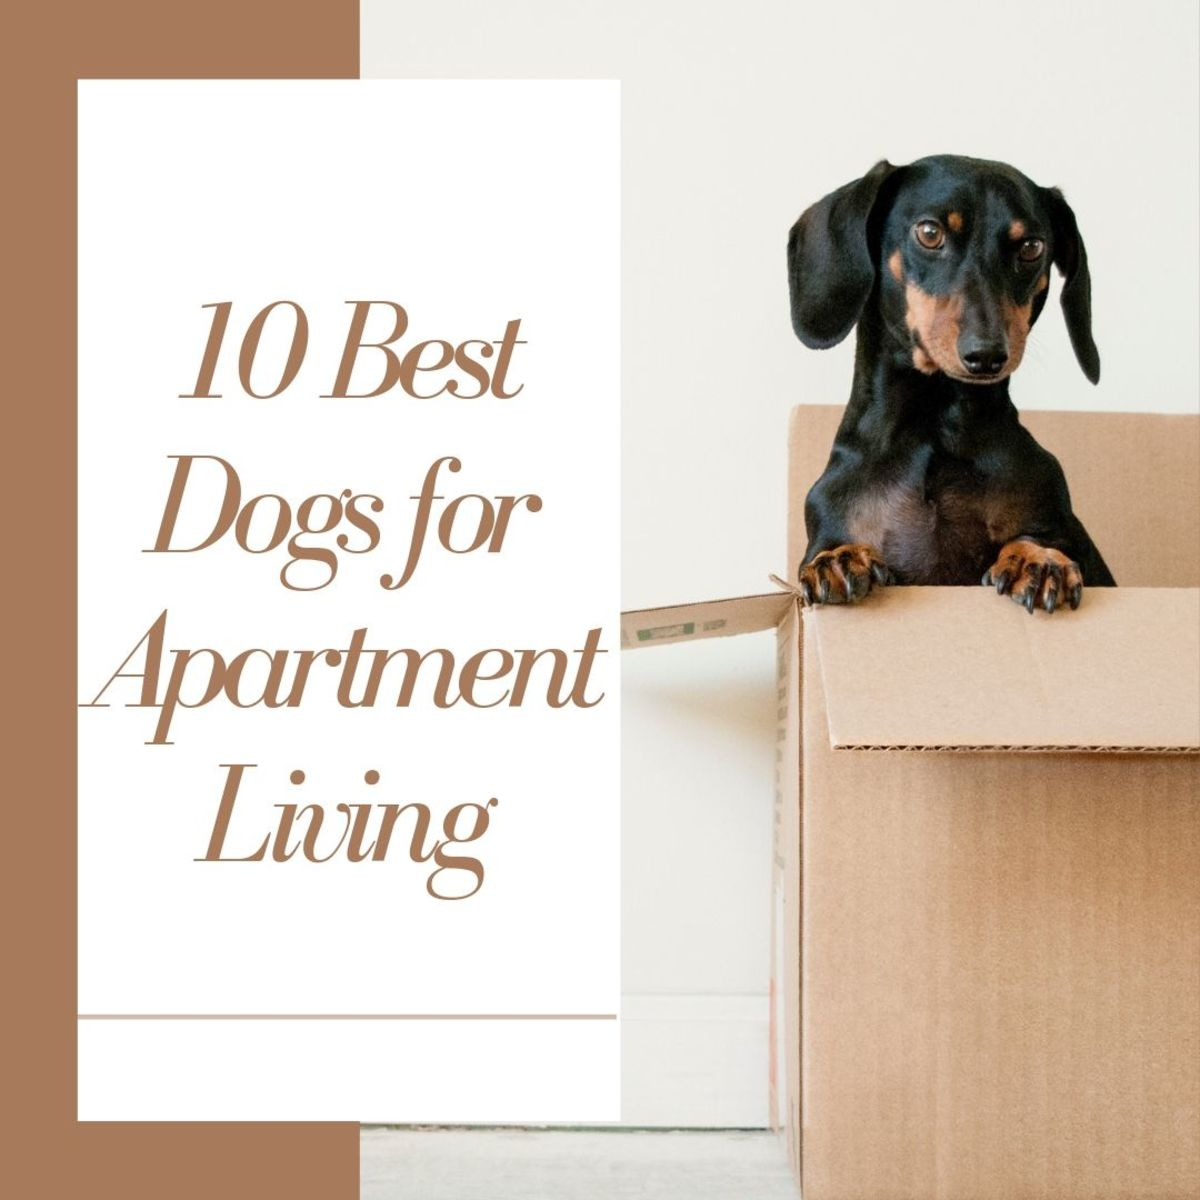 The Canine Roommate: Top 10 Best Dog Breeds for Apartment Living